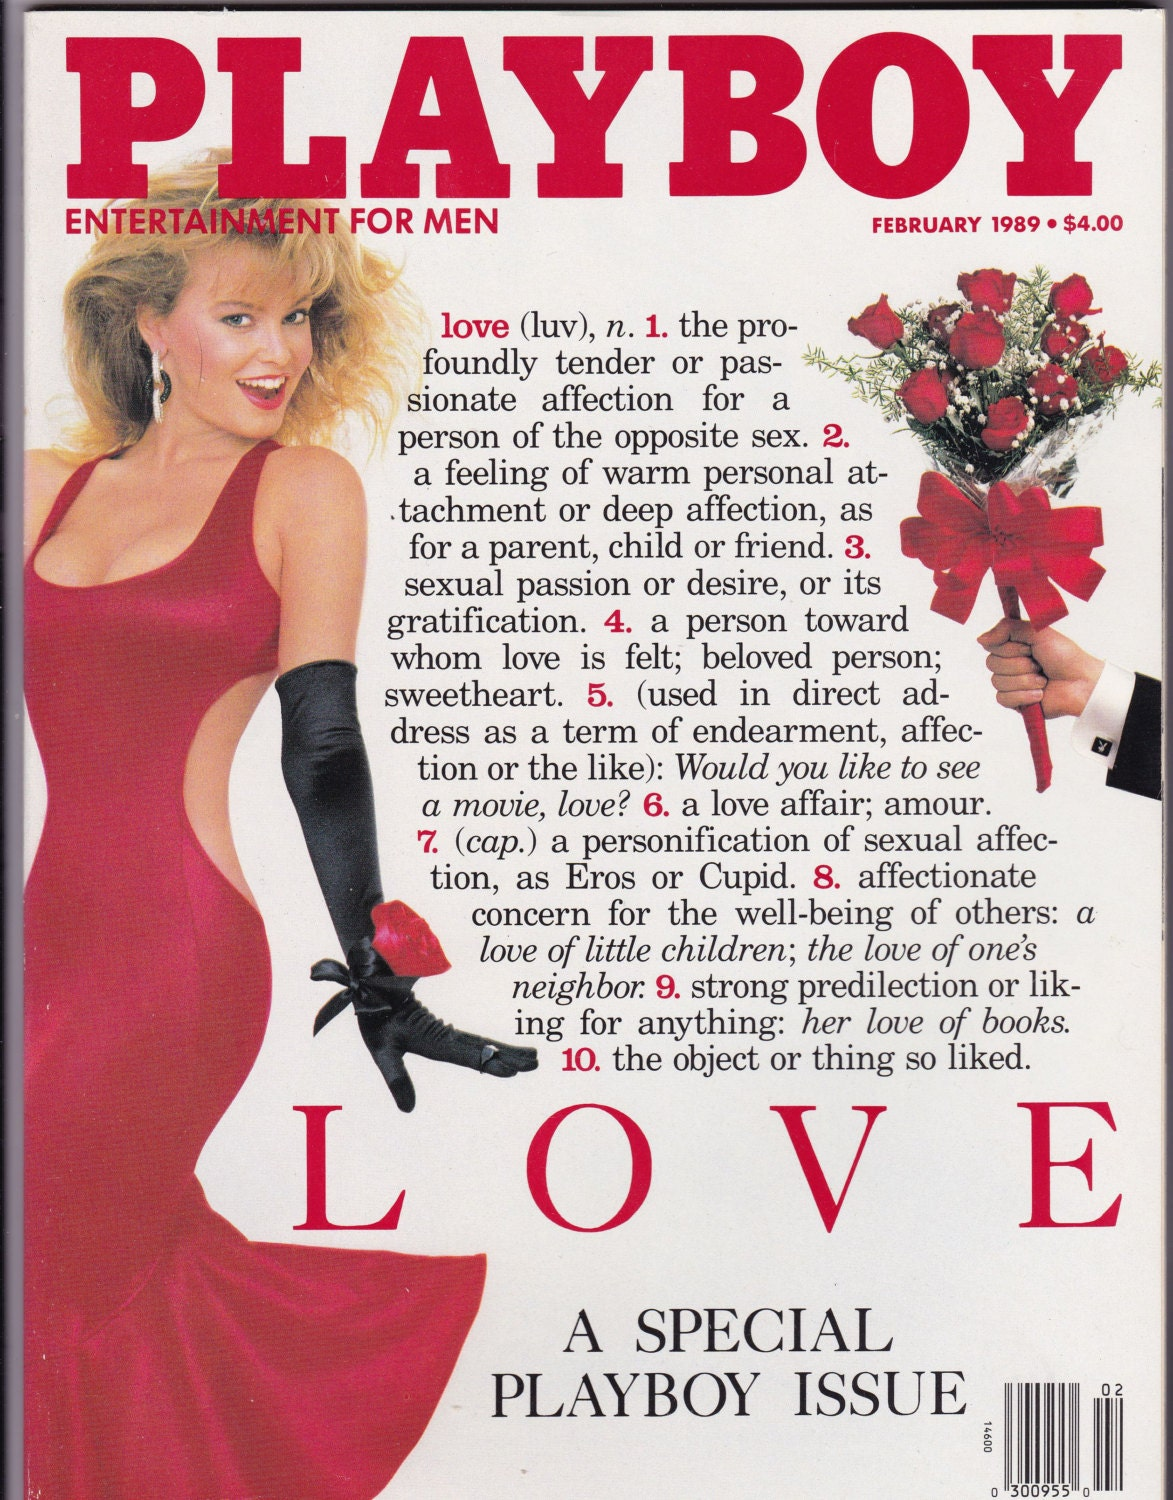 Playboy Magazine Special Edition ~ Playboy's Holiday Album 1971 Softcover